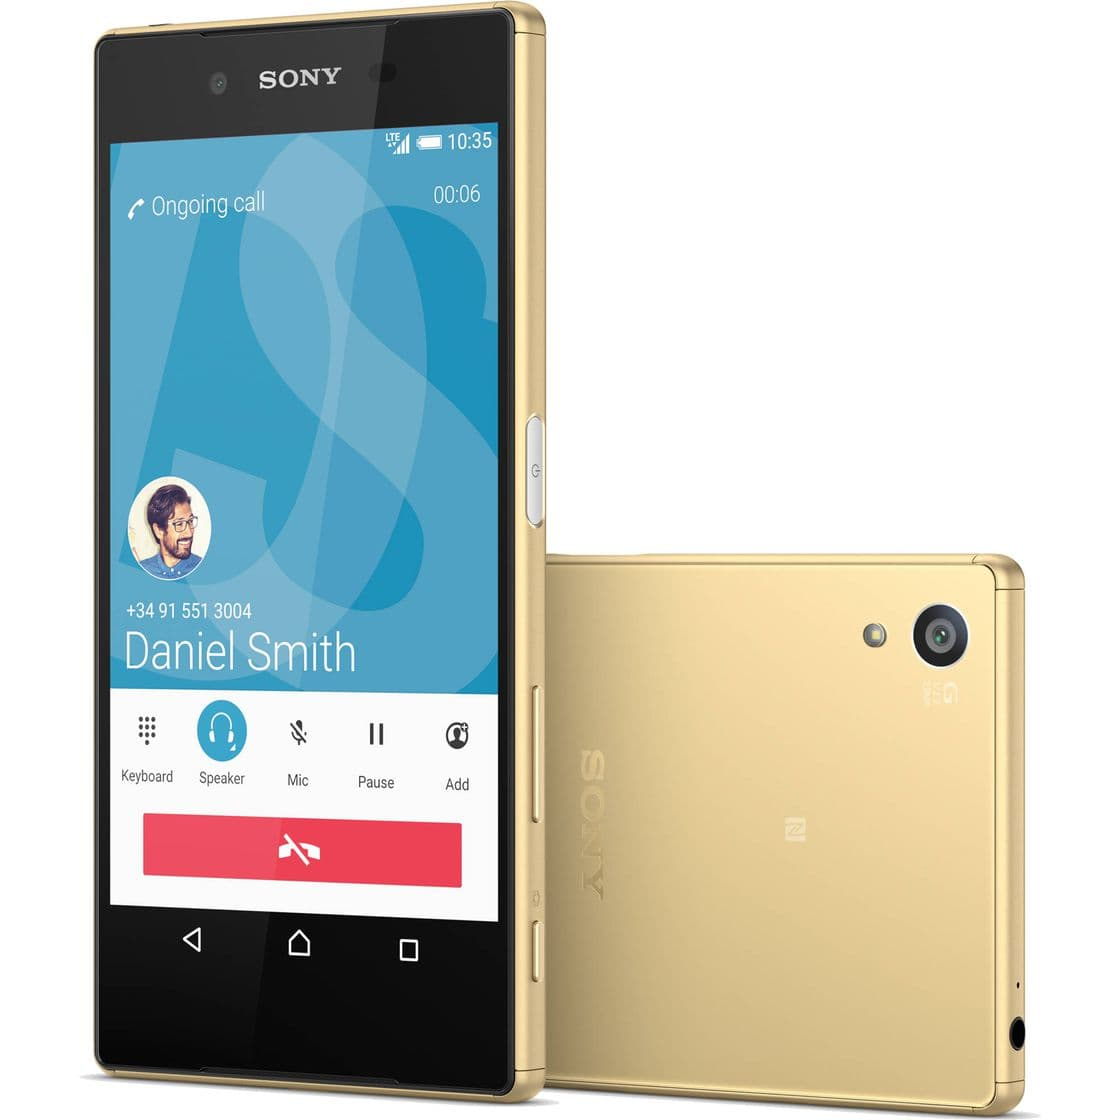 Sony Xperia Z5 Buy Smartphone Compare Prices In Stores